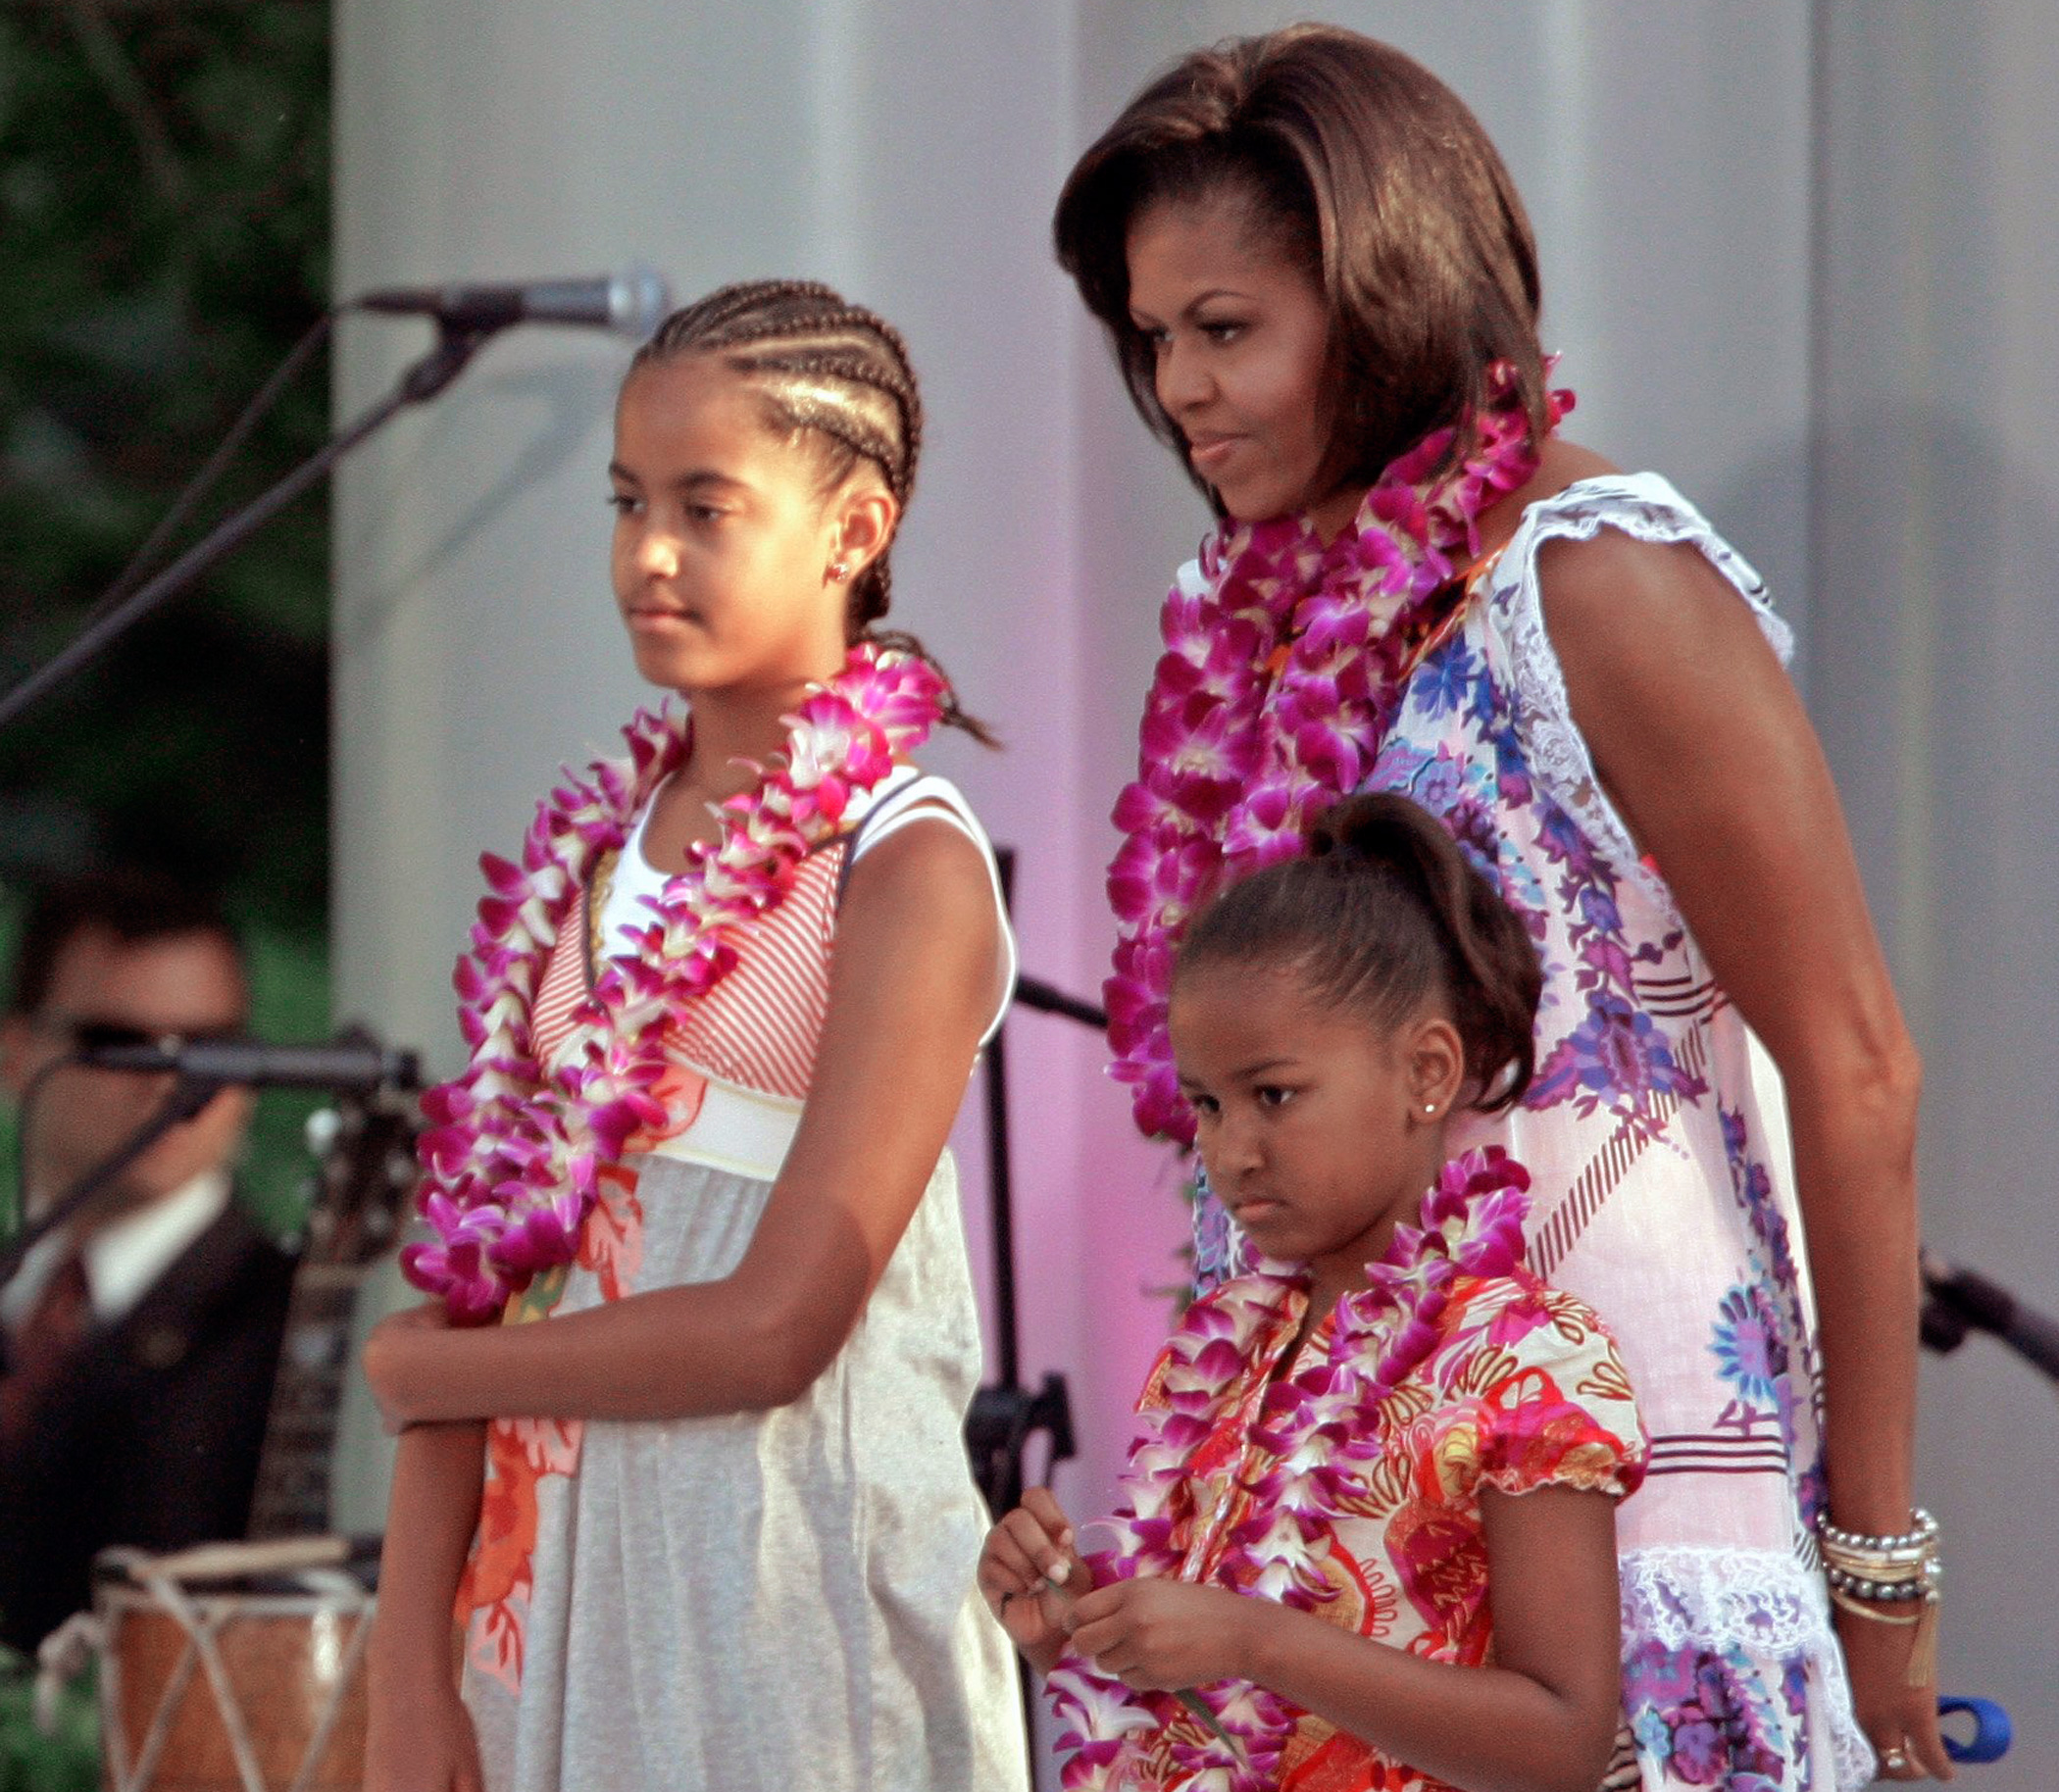 June 25, 2009                                Malia Obama with mother Michelle and sister Sasha, attend a luau hosted by the president on the South Lawn of the White House for members of Congress and their families.